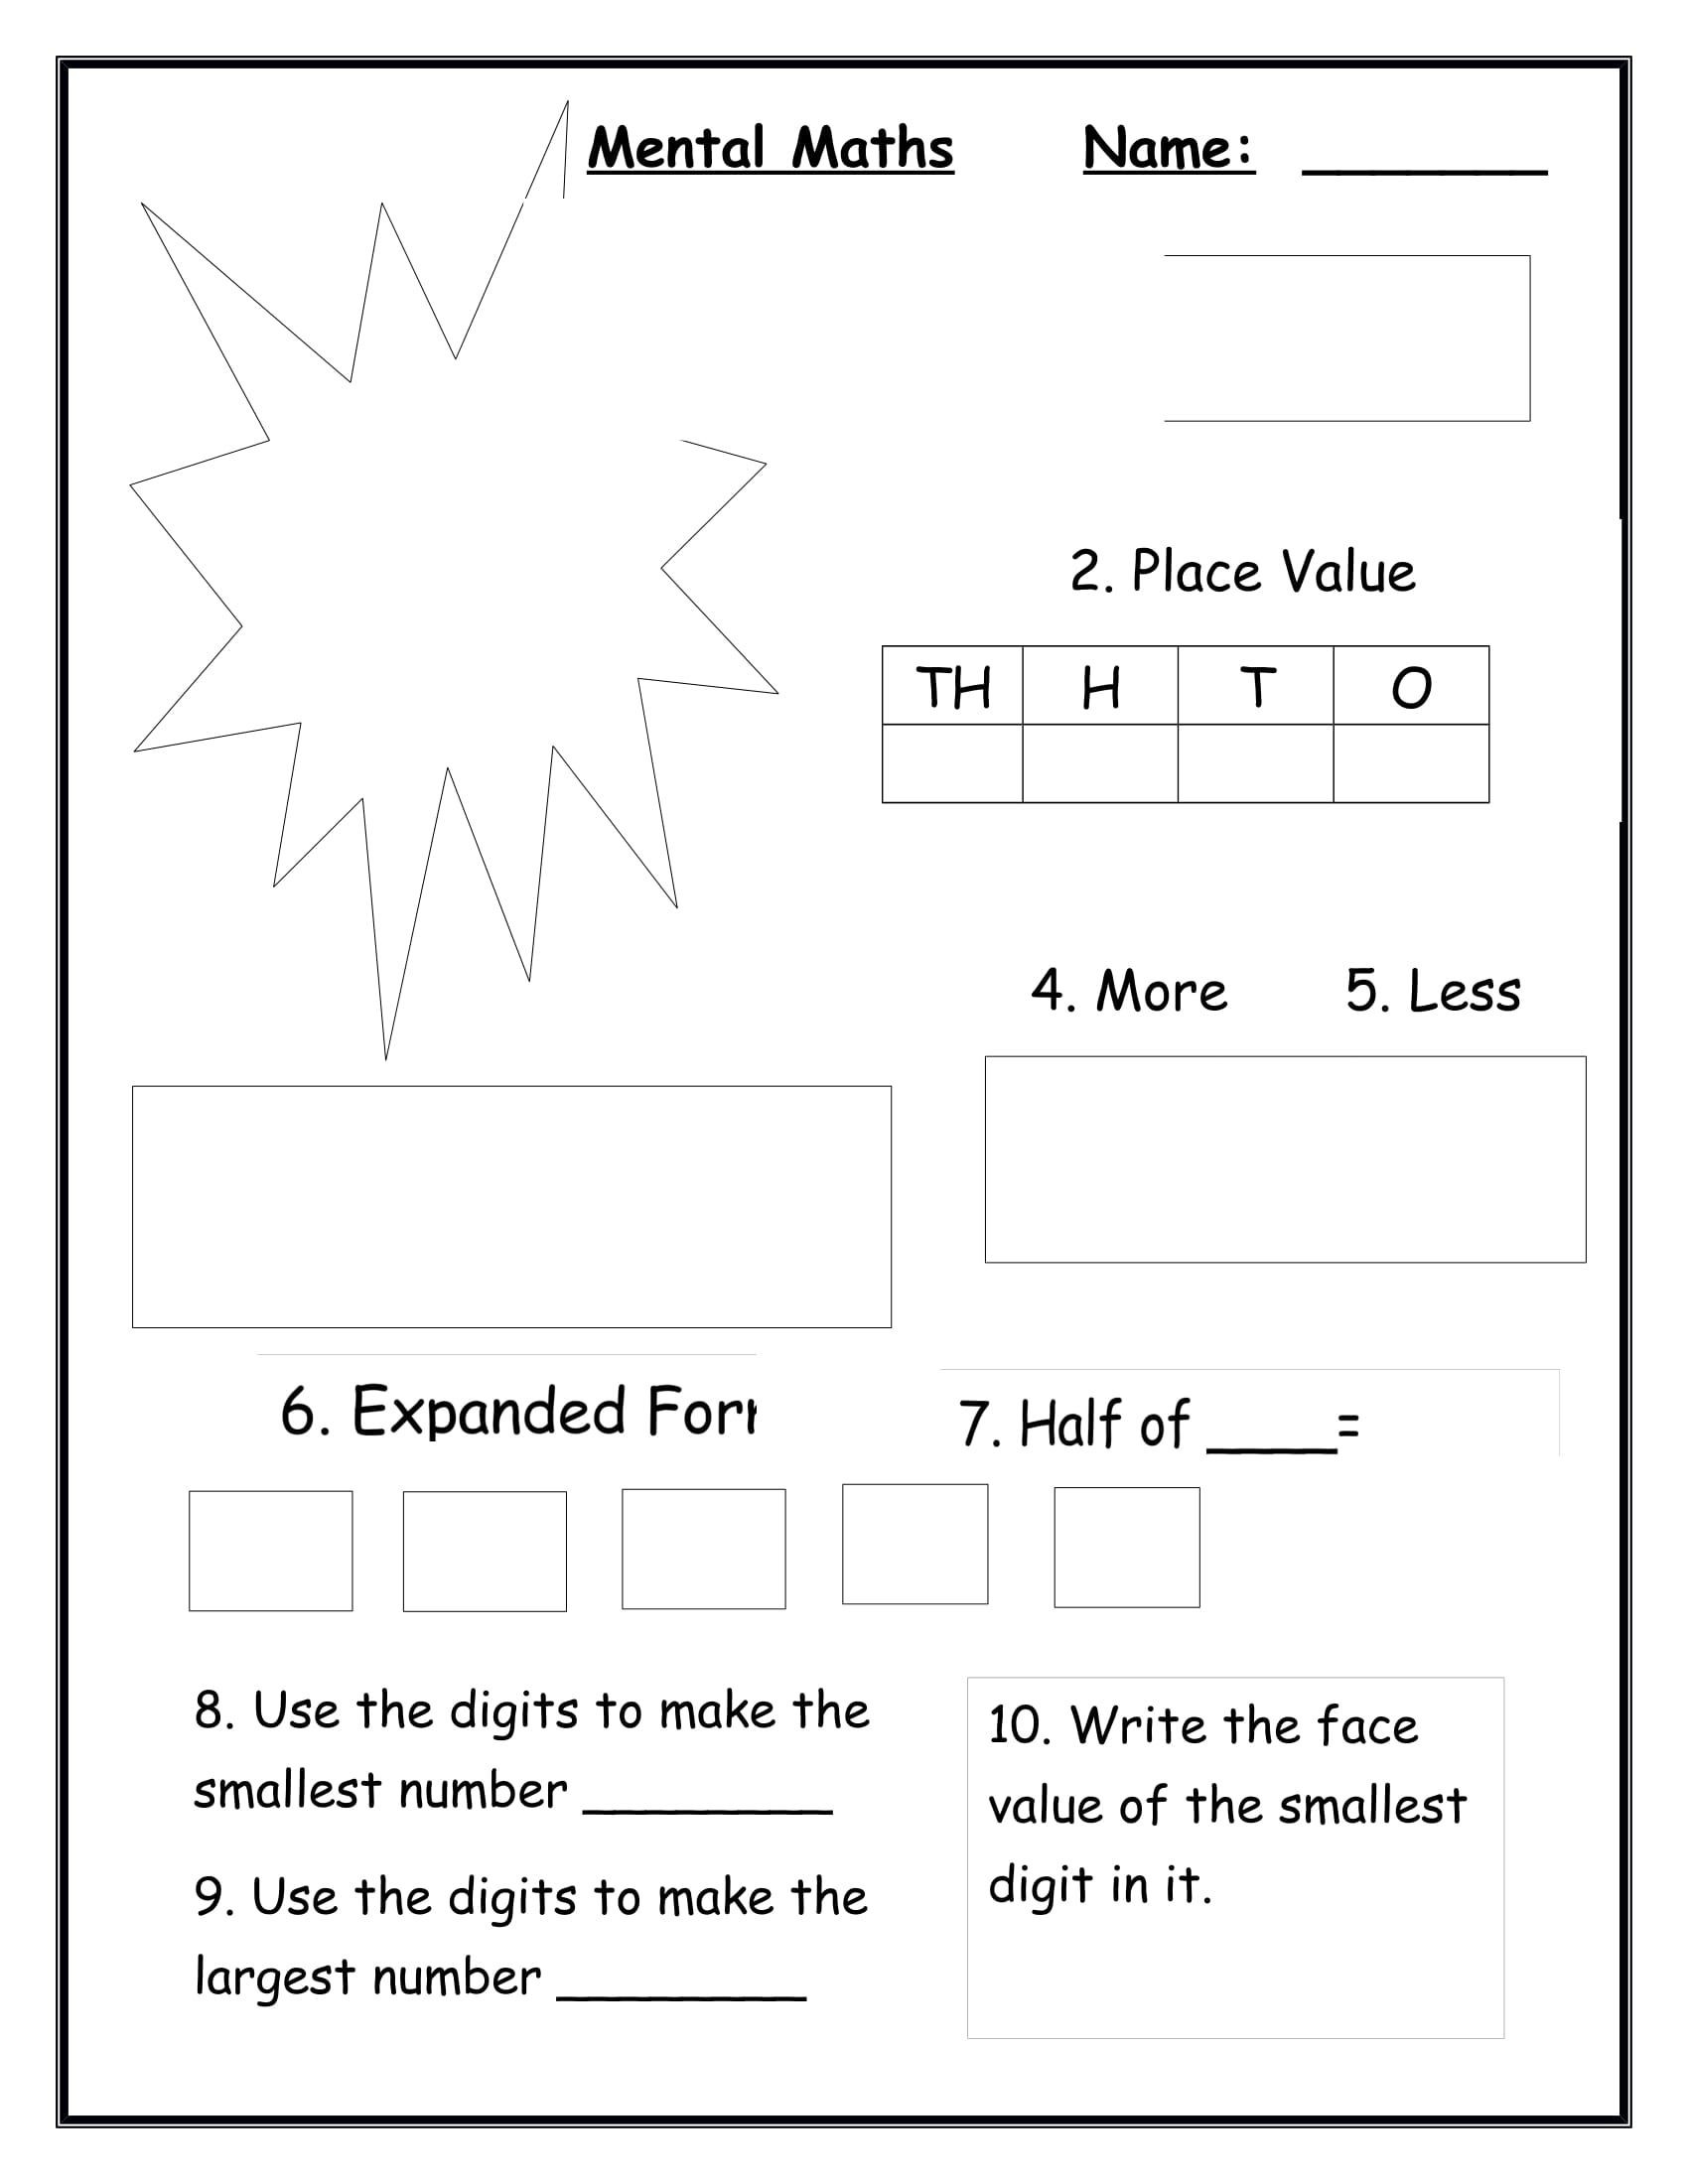 Mental Math Worksheets Grade 3 Mental Maths for Grade 3 4 Digit Numbers